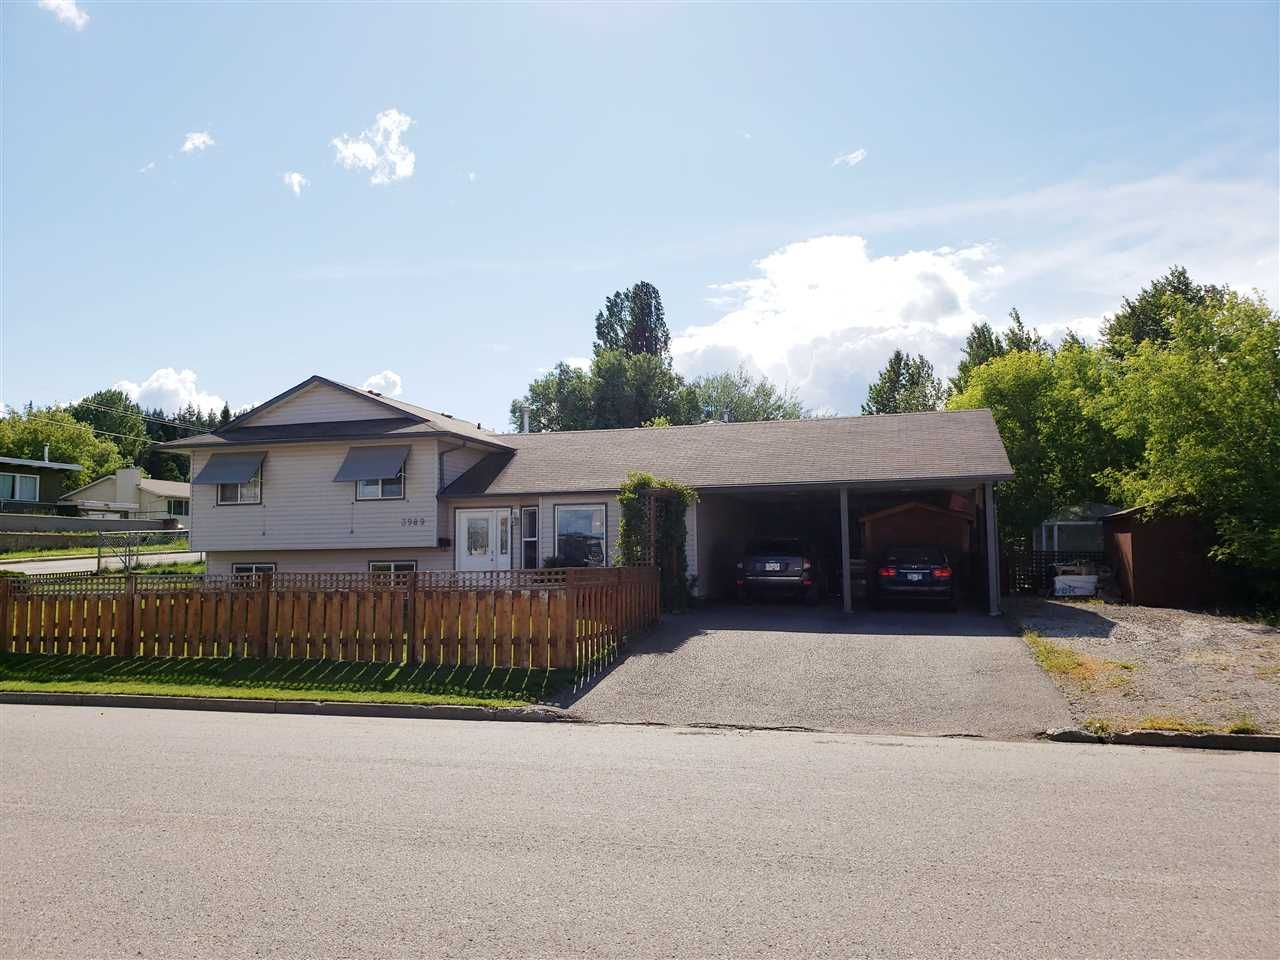 Main Photo: 3989 WIEBE Road in Prince George: Peden Hill House for sale (PG City West (Zone 71))  : MLS®# R2470209